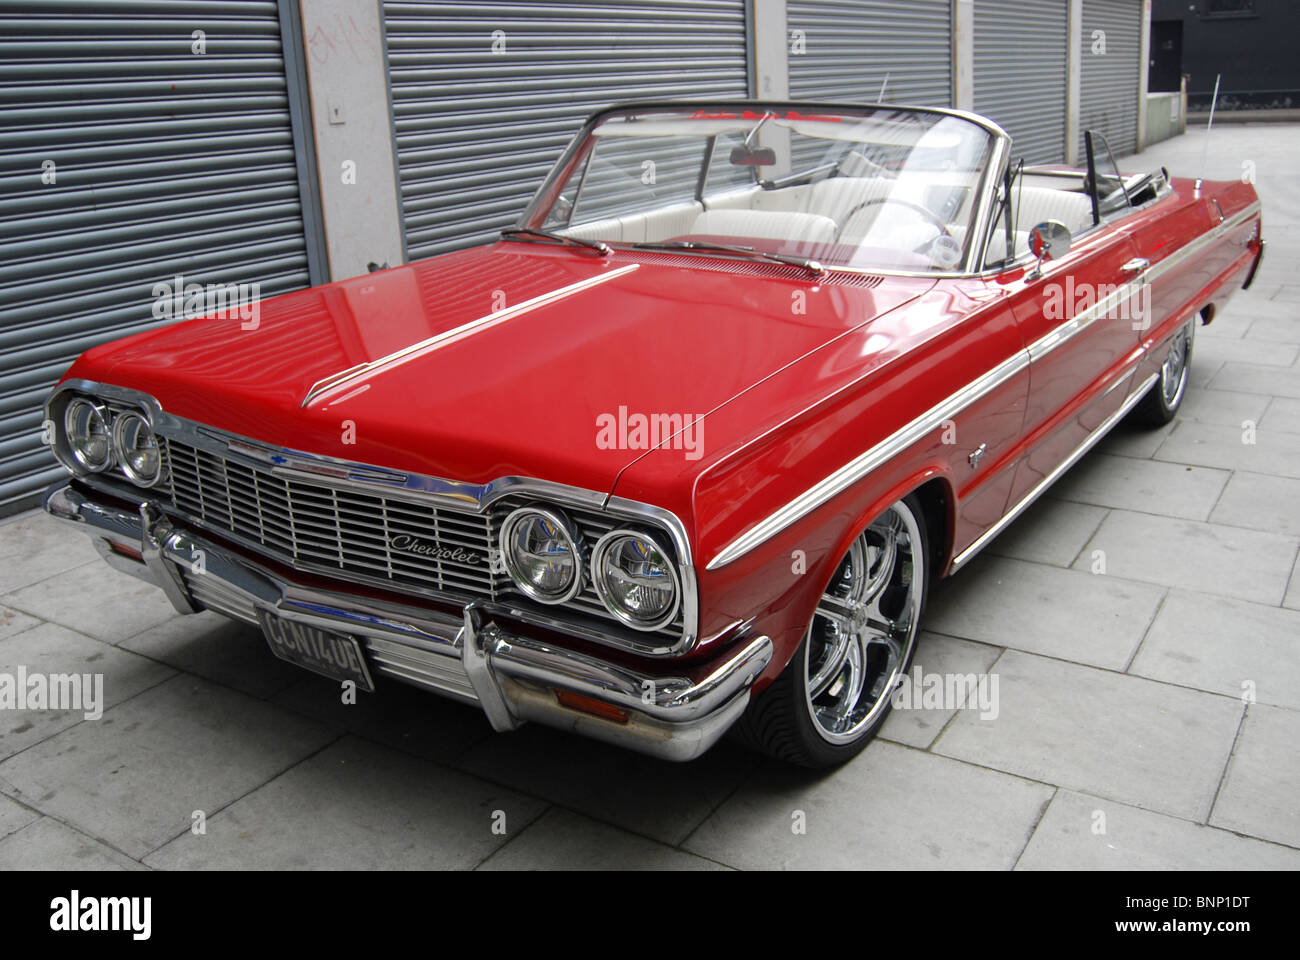 Chevy impala 1960s car red stock image